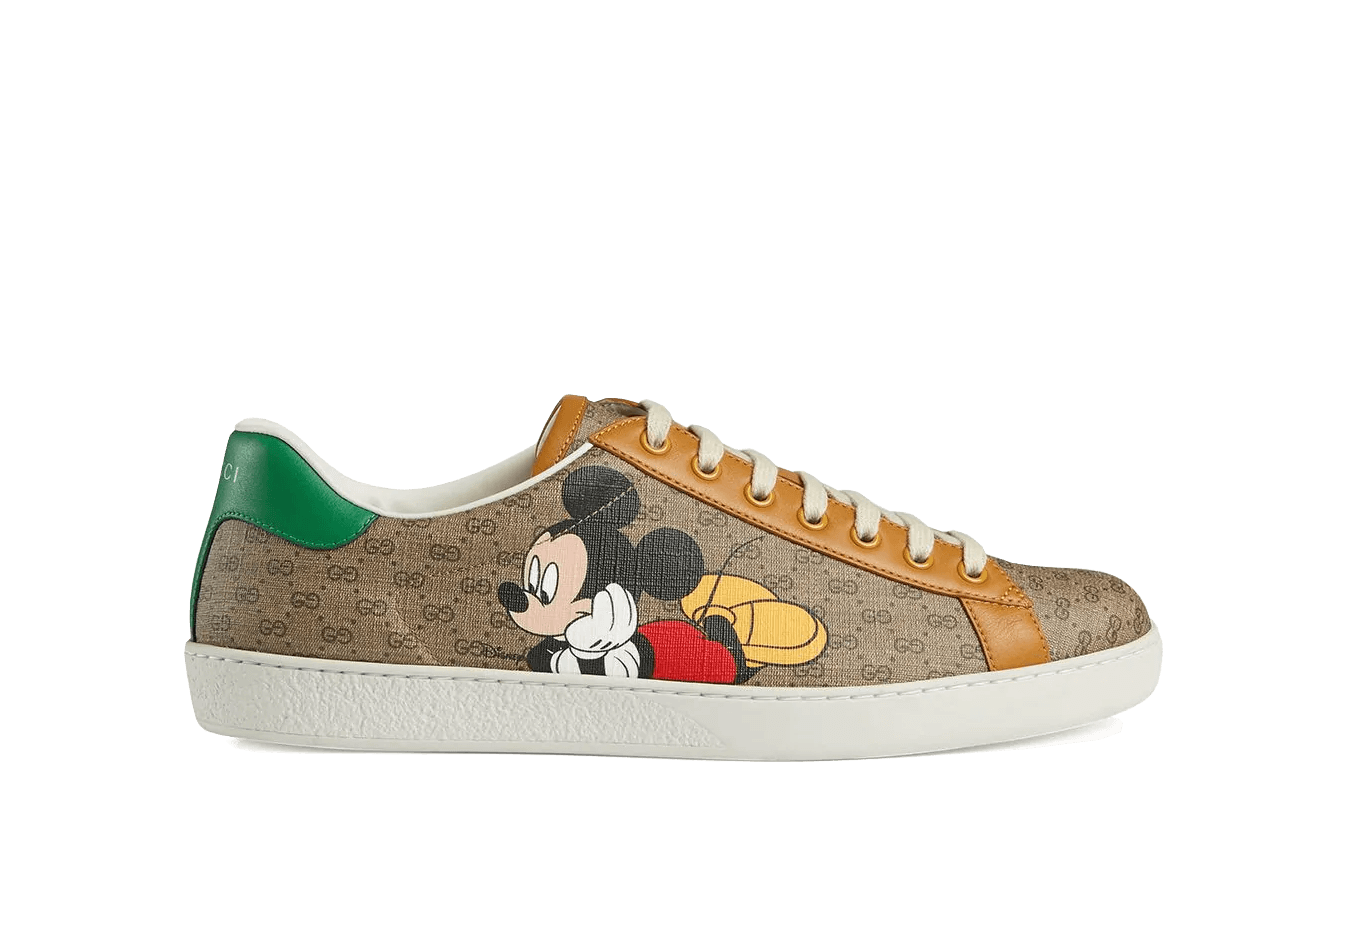 Buy New Gucci     Disney GG Ace Sneakers sneakers